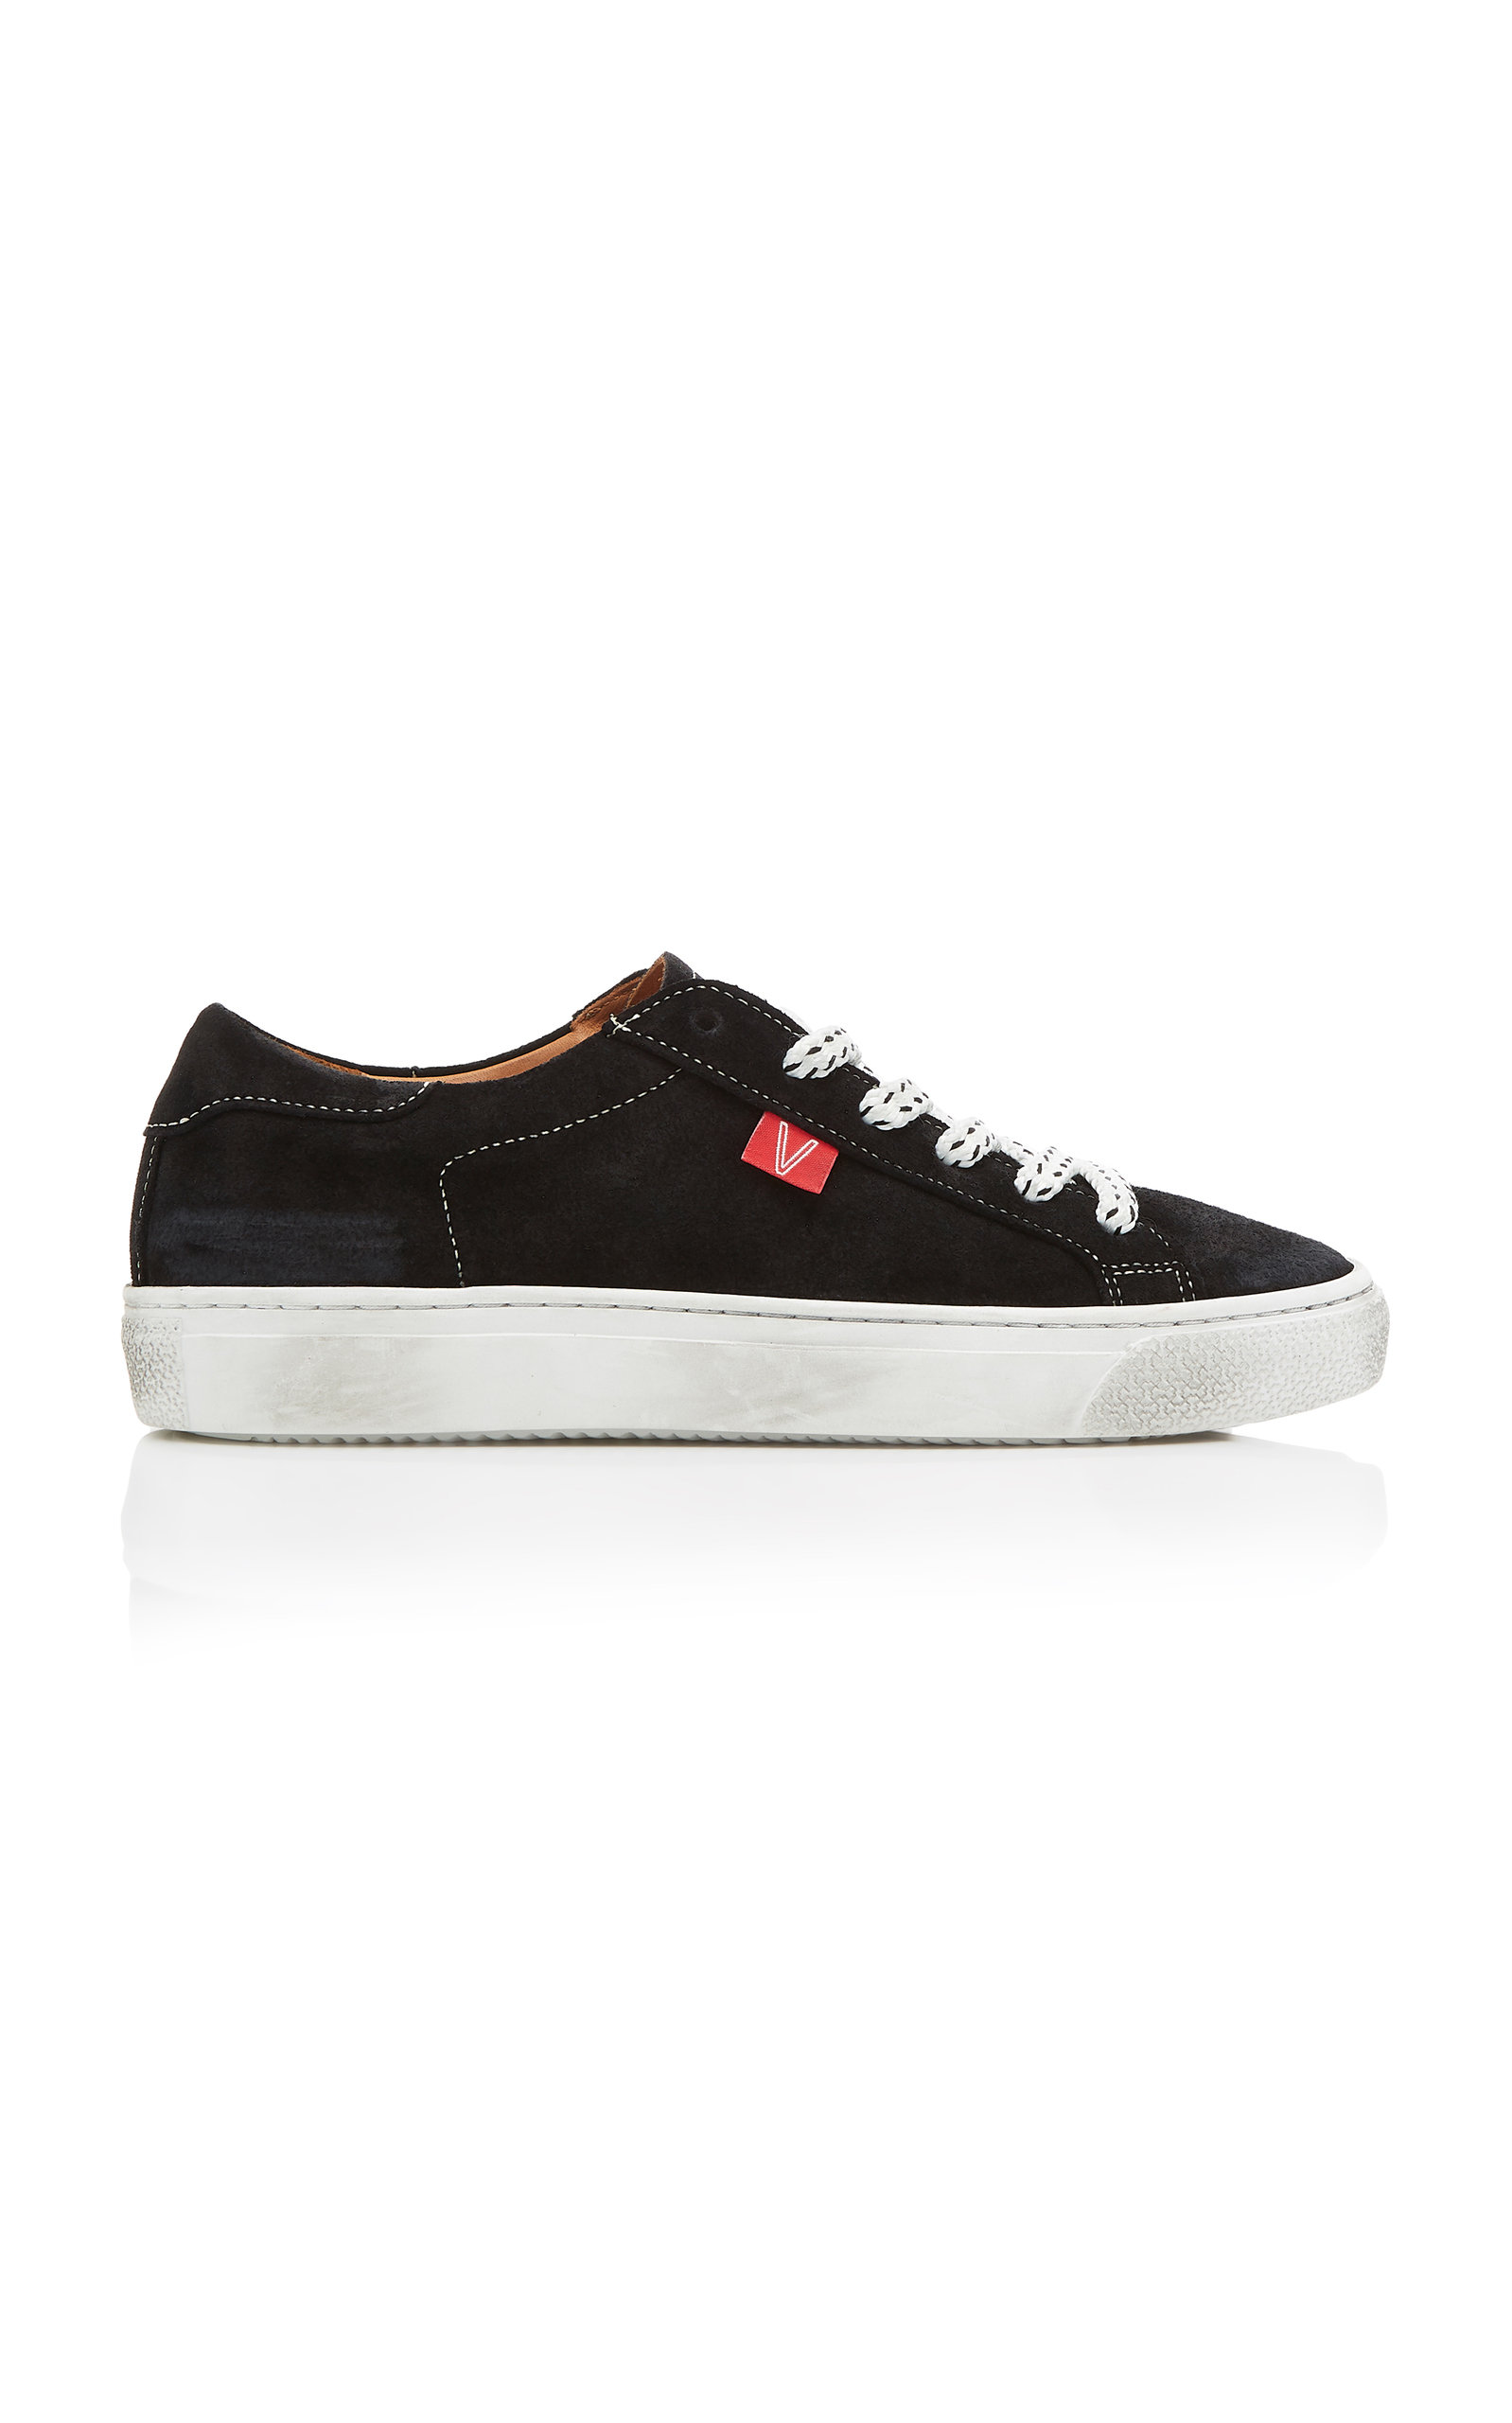 Sami Lace-Up Suede Sneakers in Black